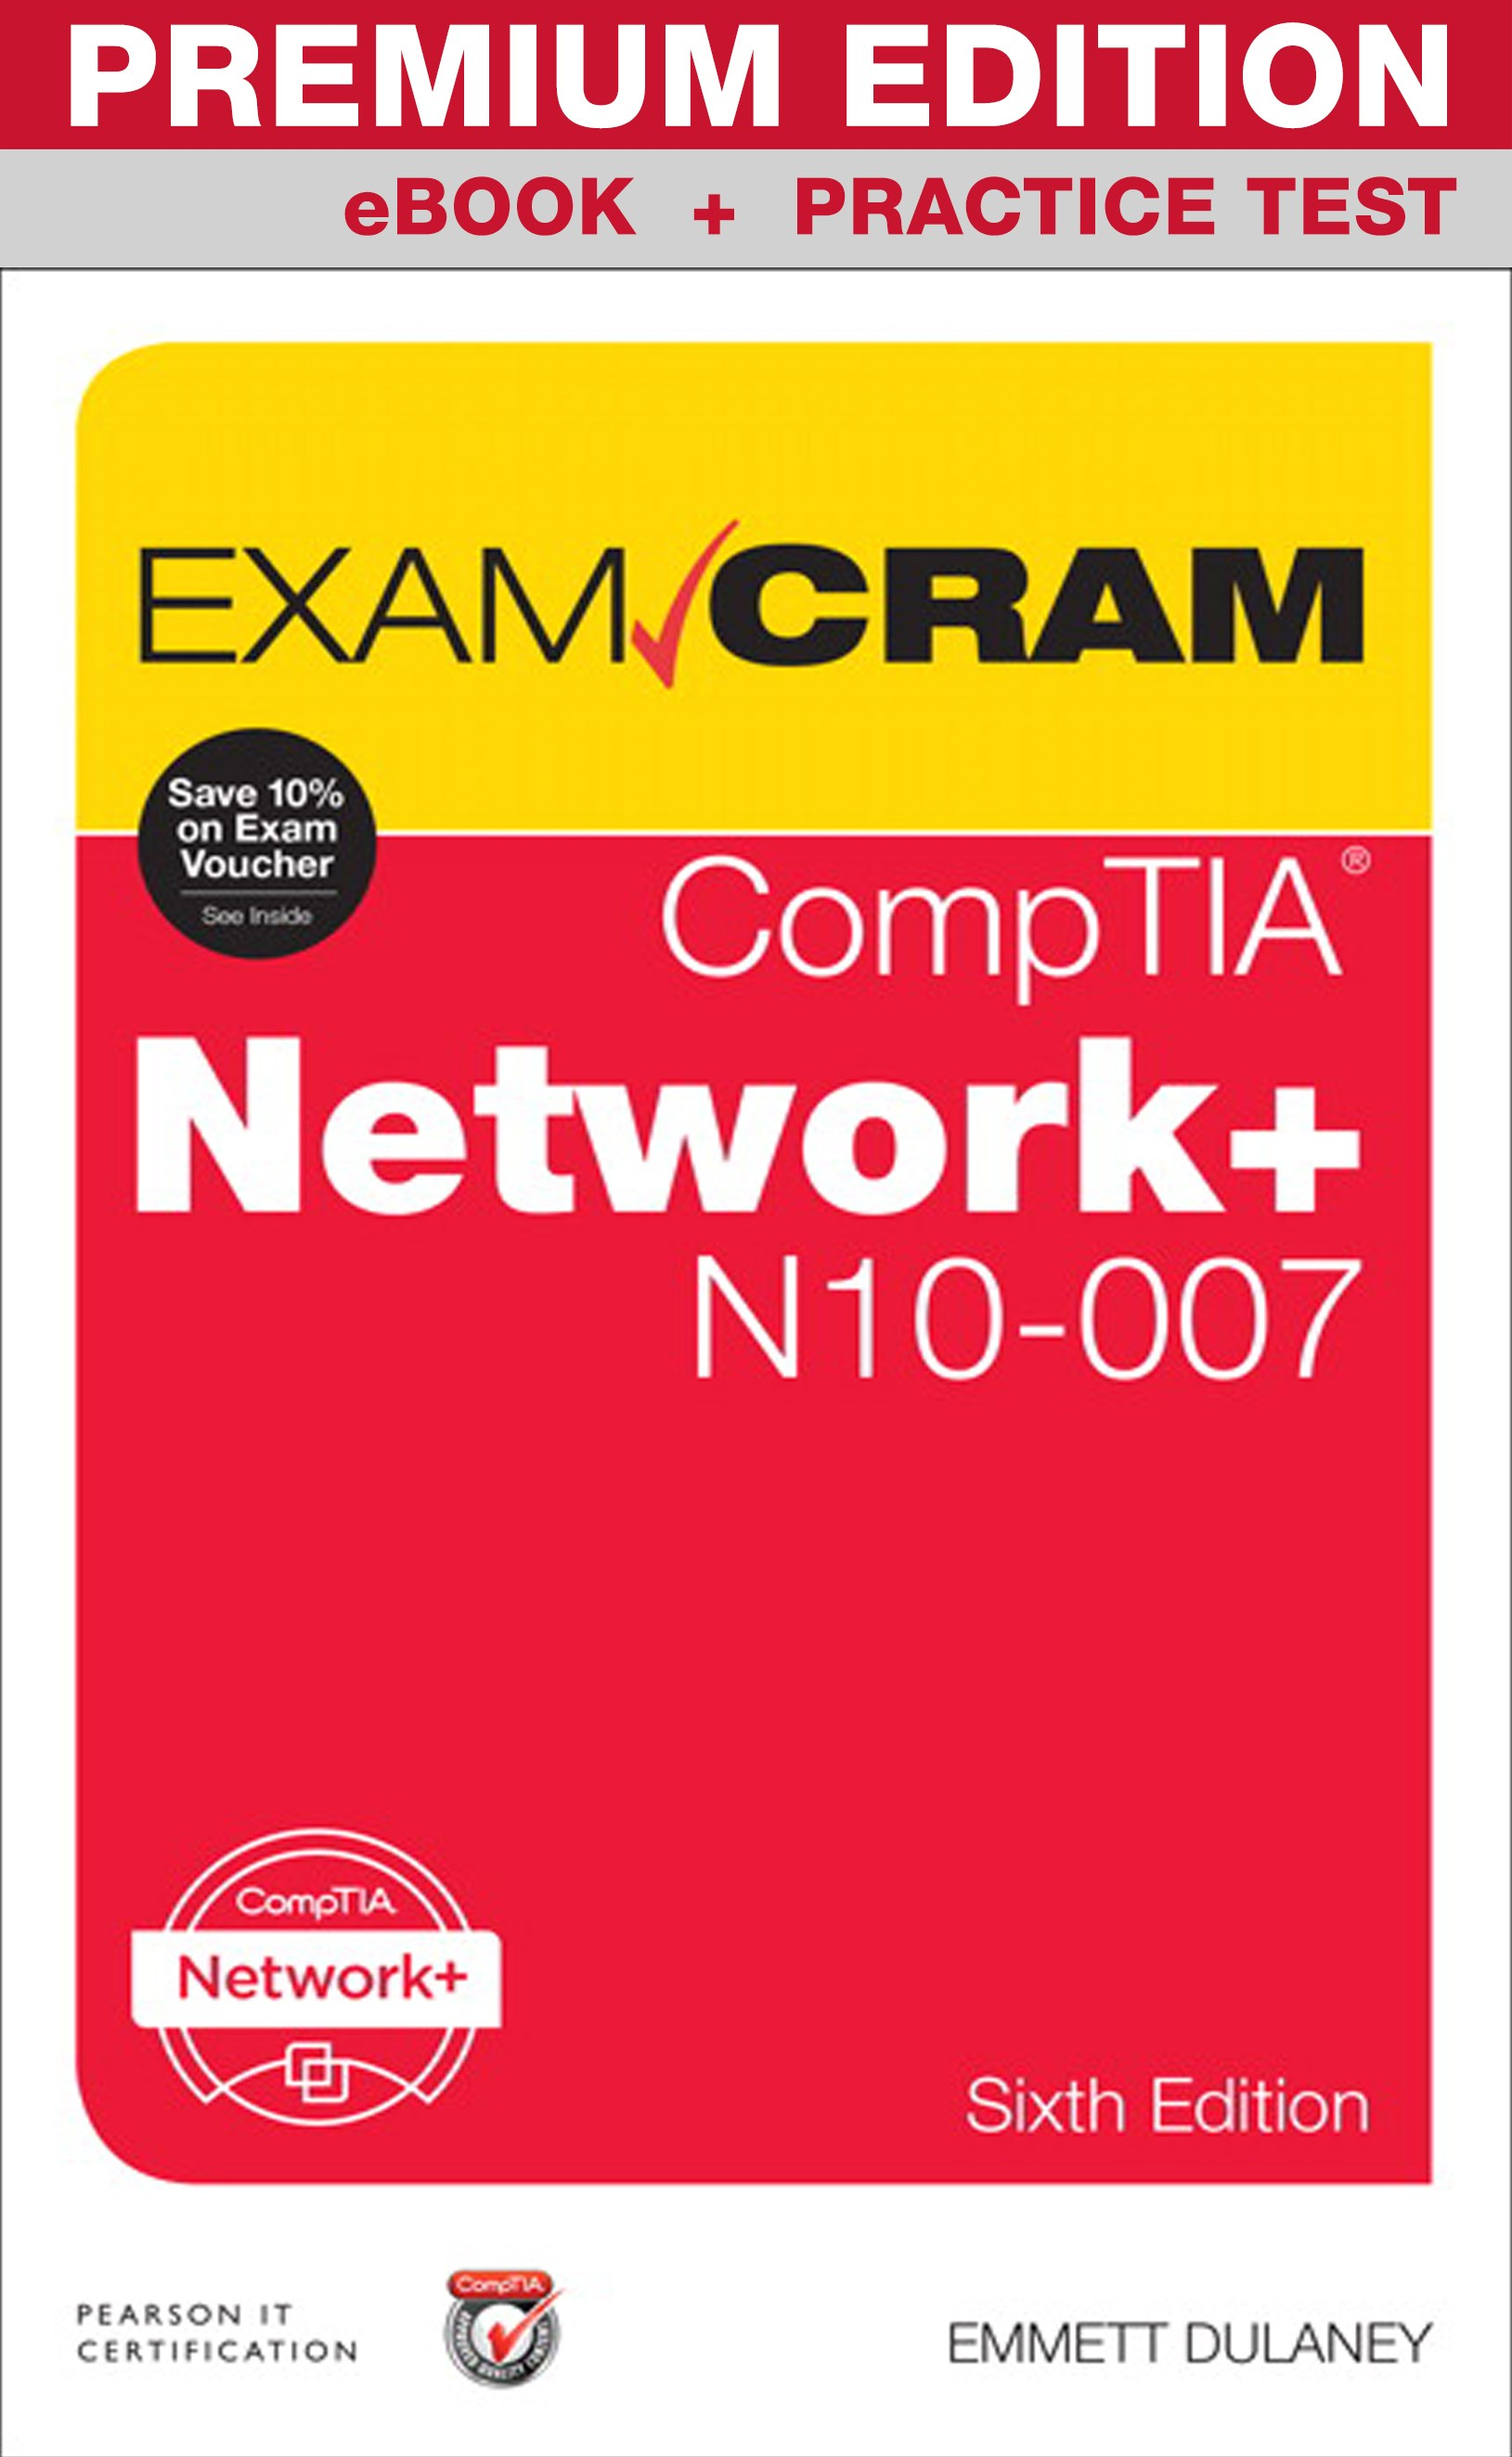 CompTIA Network+ N10-007 Exam Cram, 6th Edition